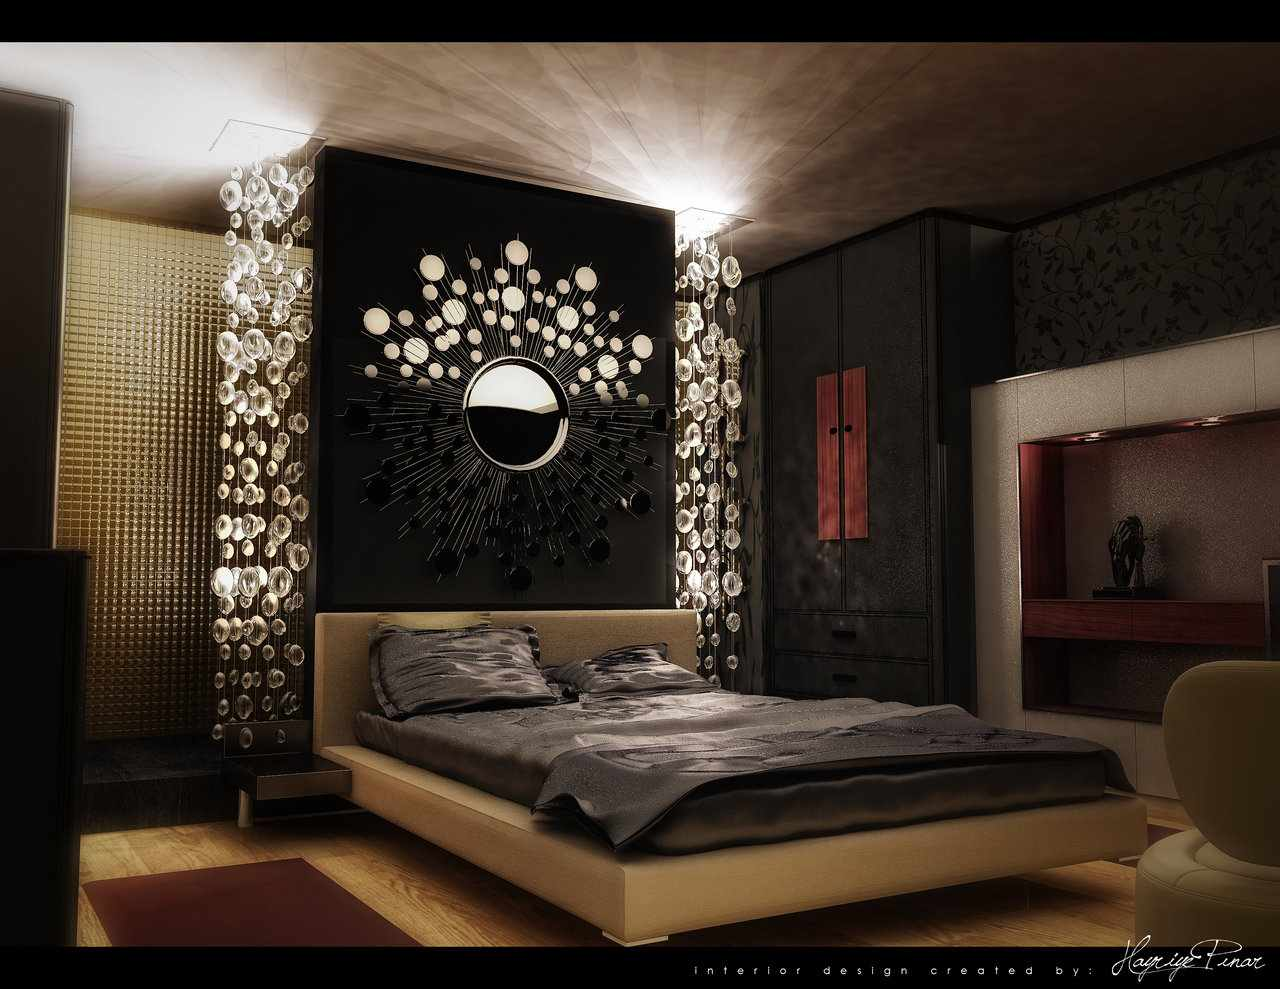 Ikea bedroom ideas ikea bedroom 2014 ideas room design for Room inspiration bedroom